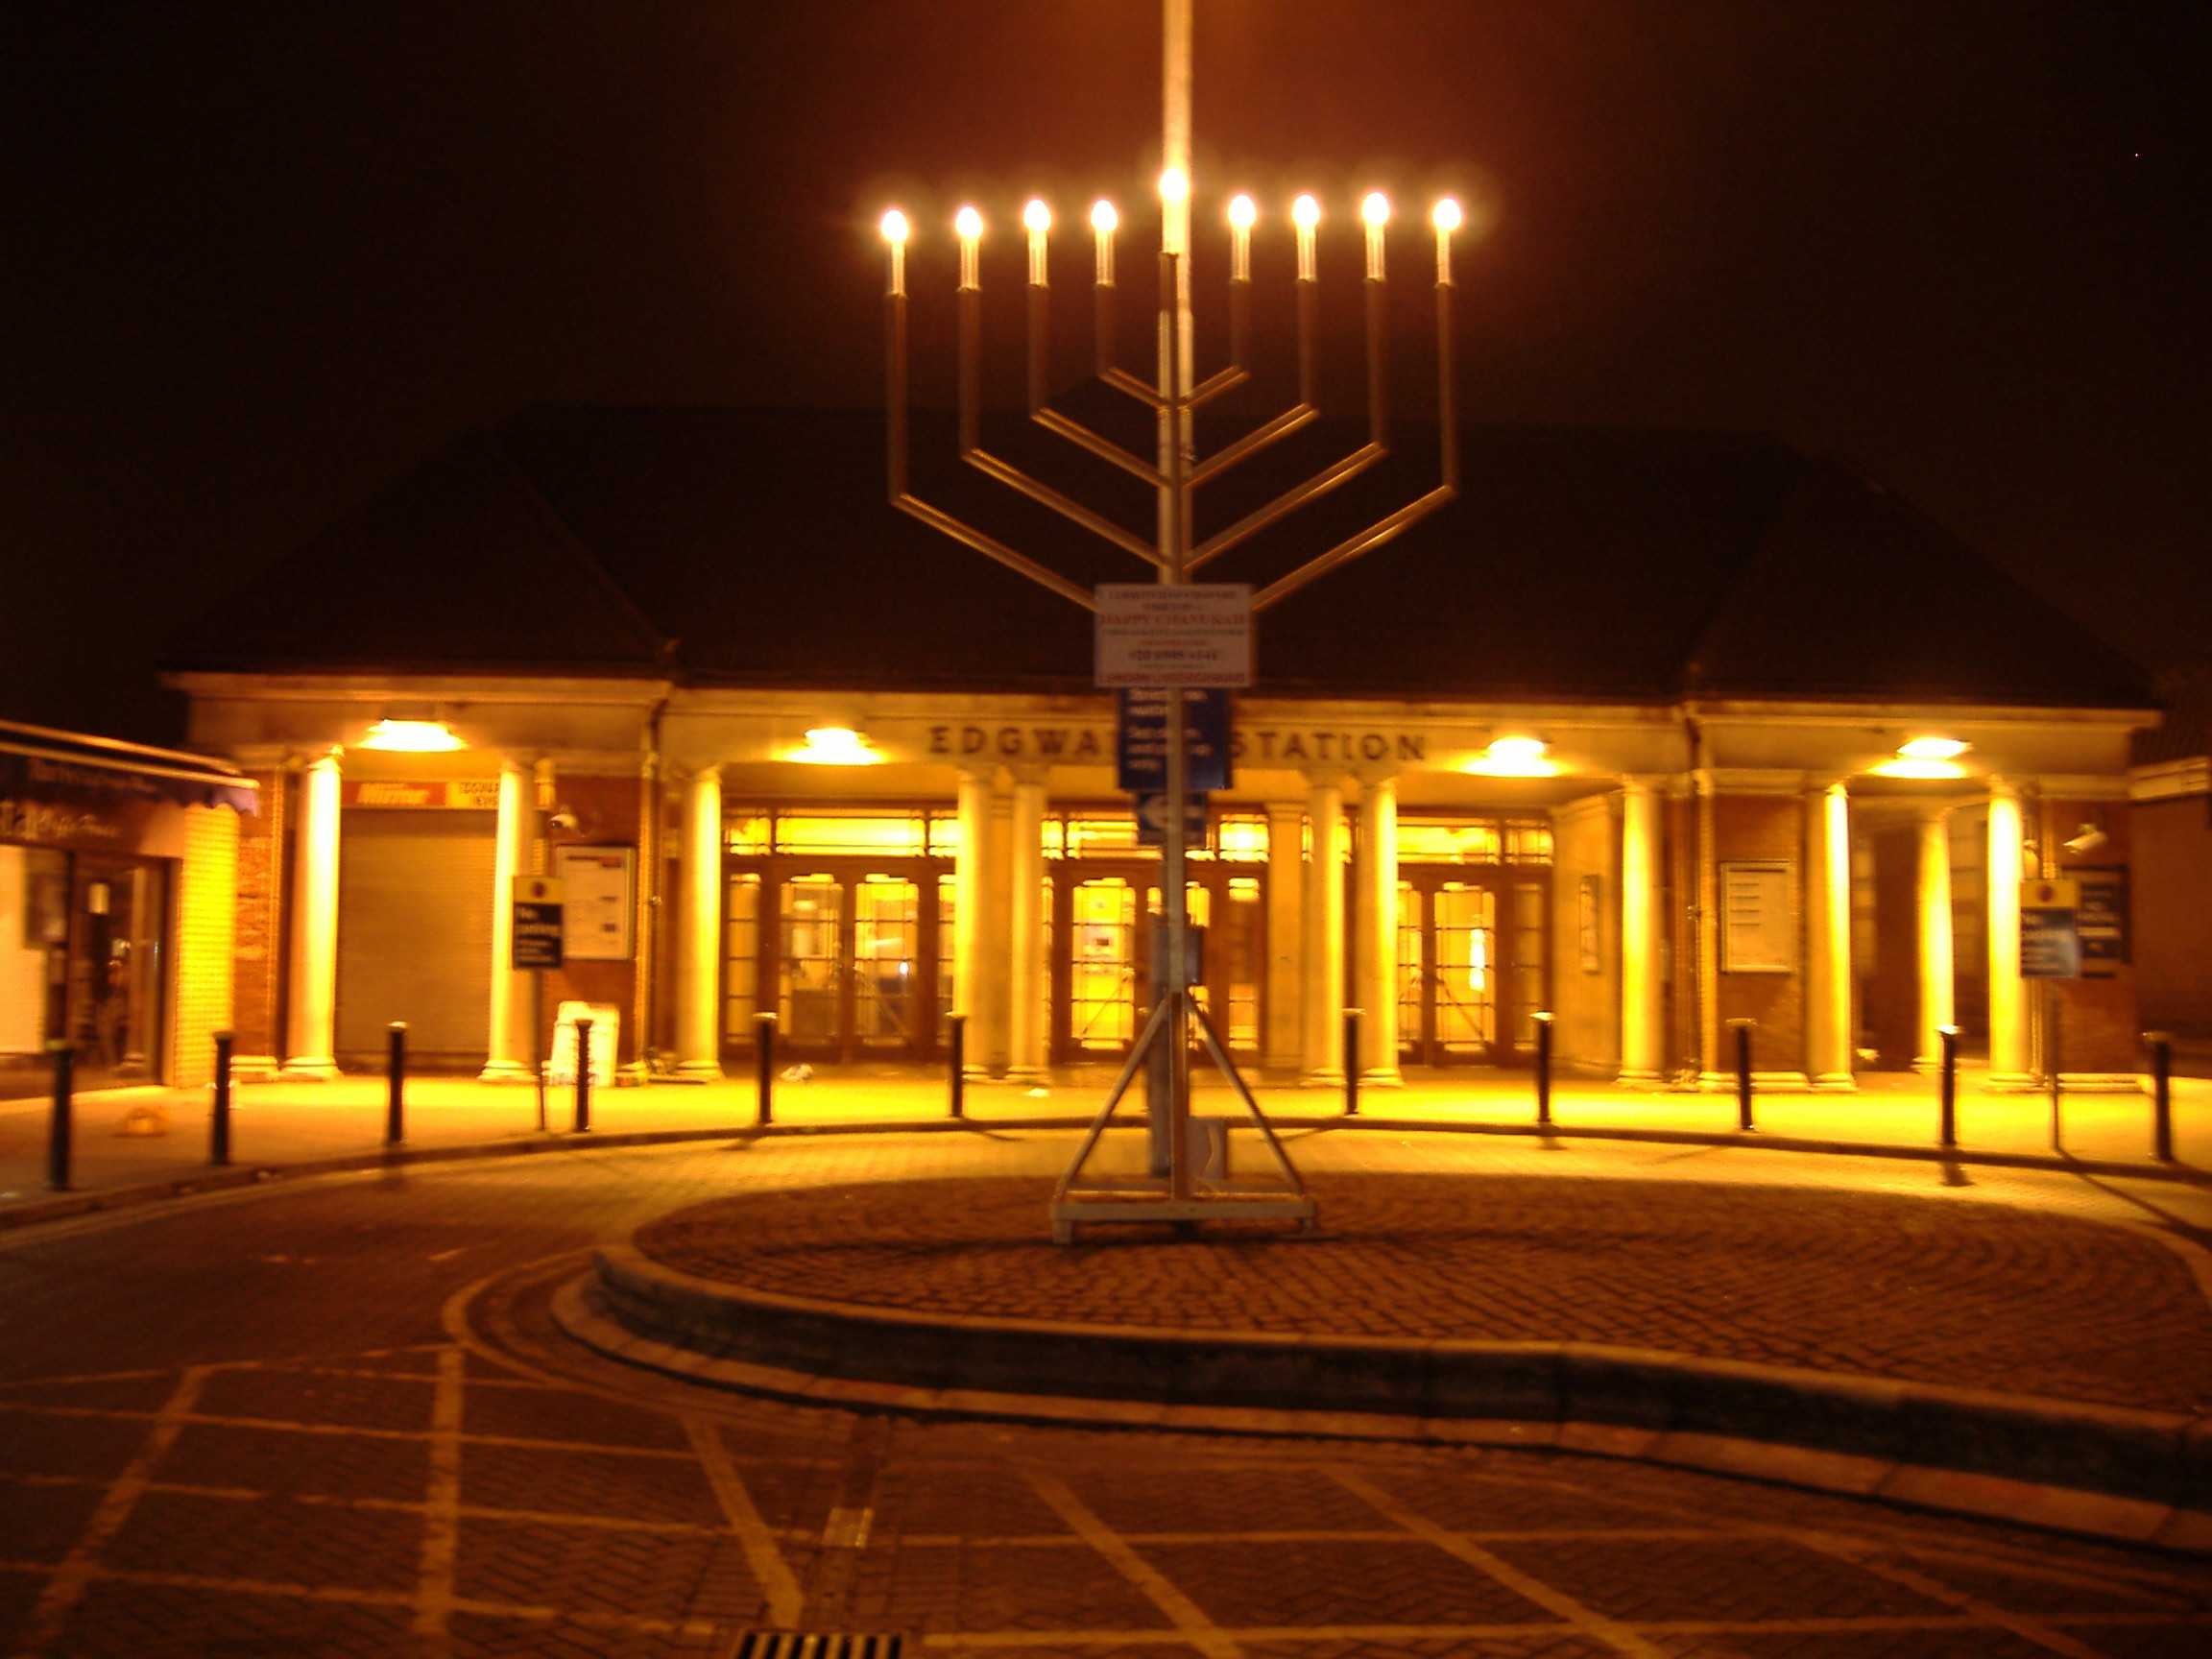 Menorah in Edgware, north of Hendon